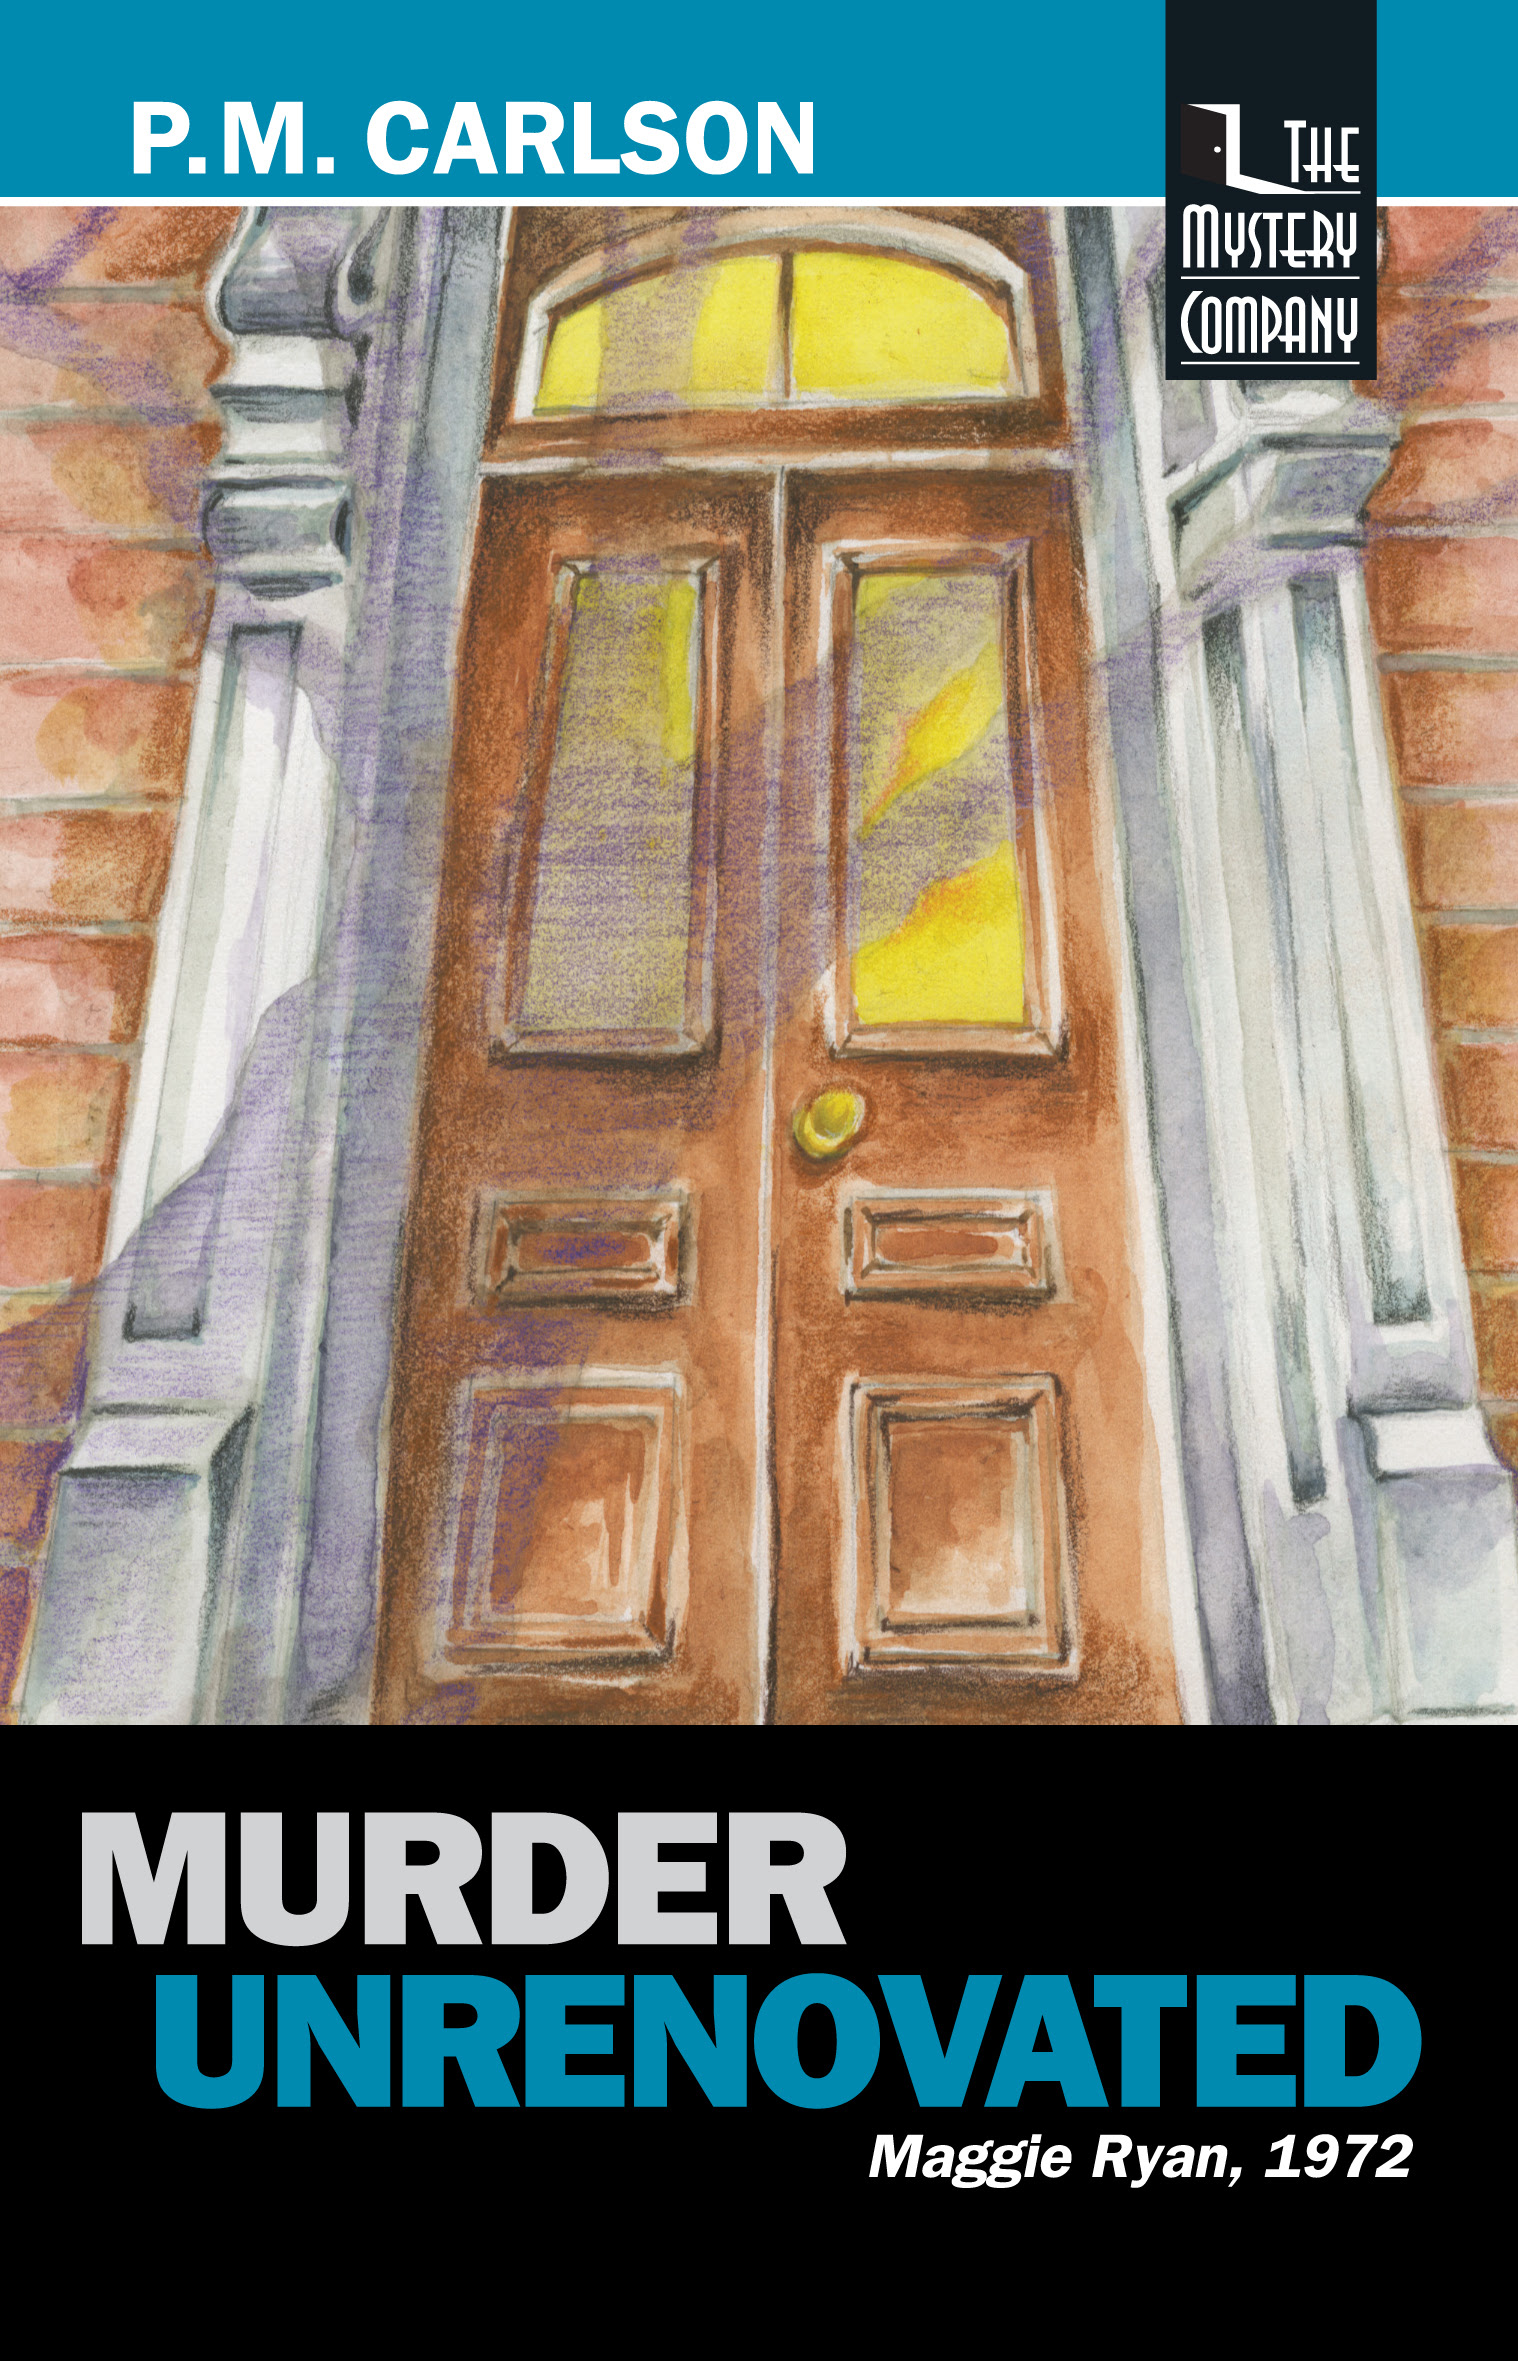 Murder Unrenovated by P.M. Carlson